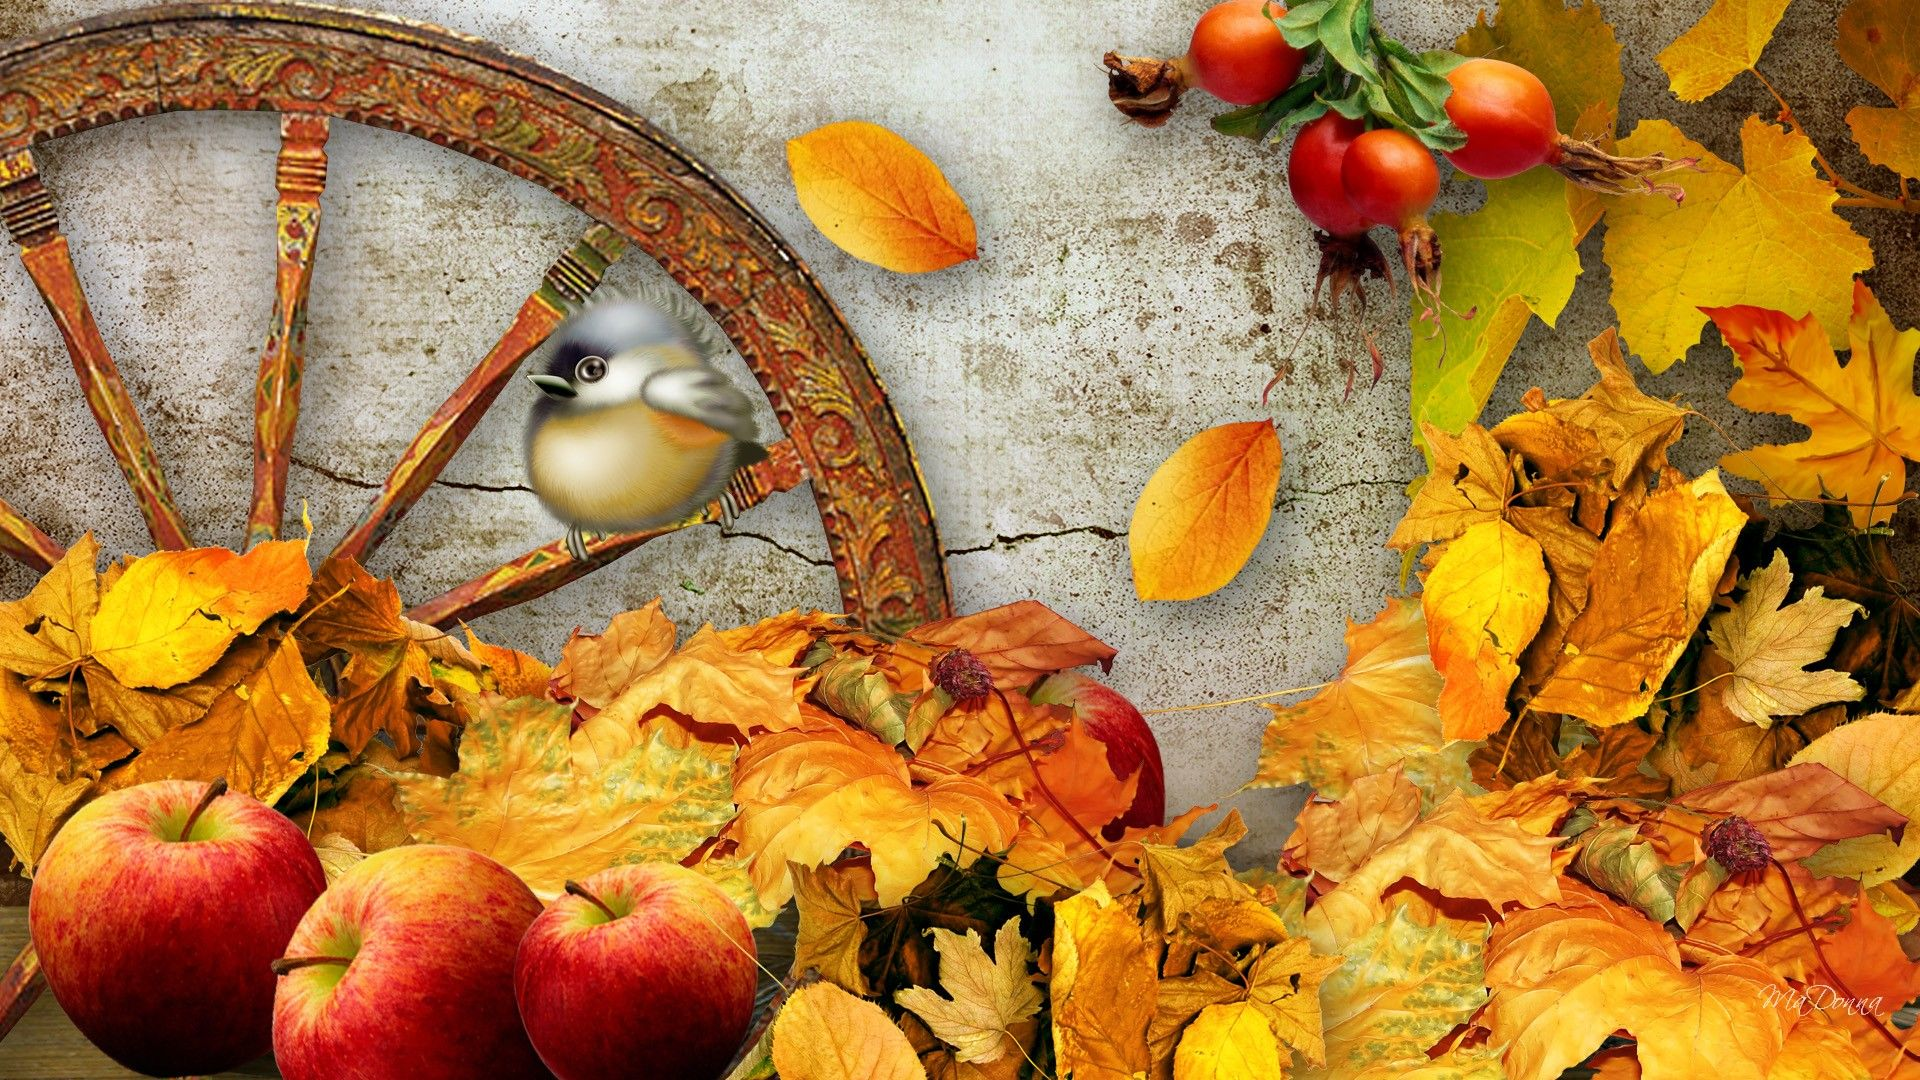 Fall Harvest Wallpaper Mobile Free Download Fall